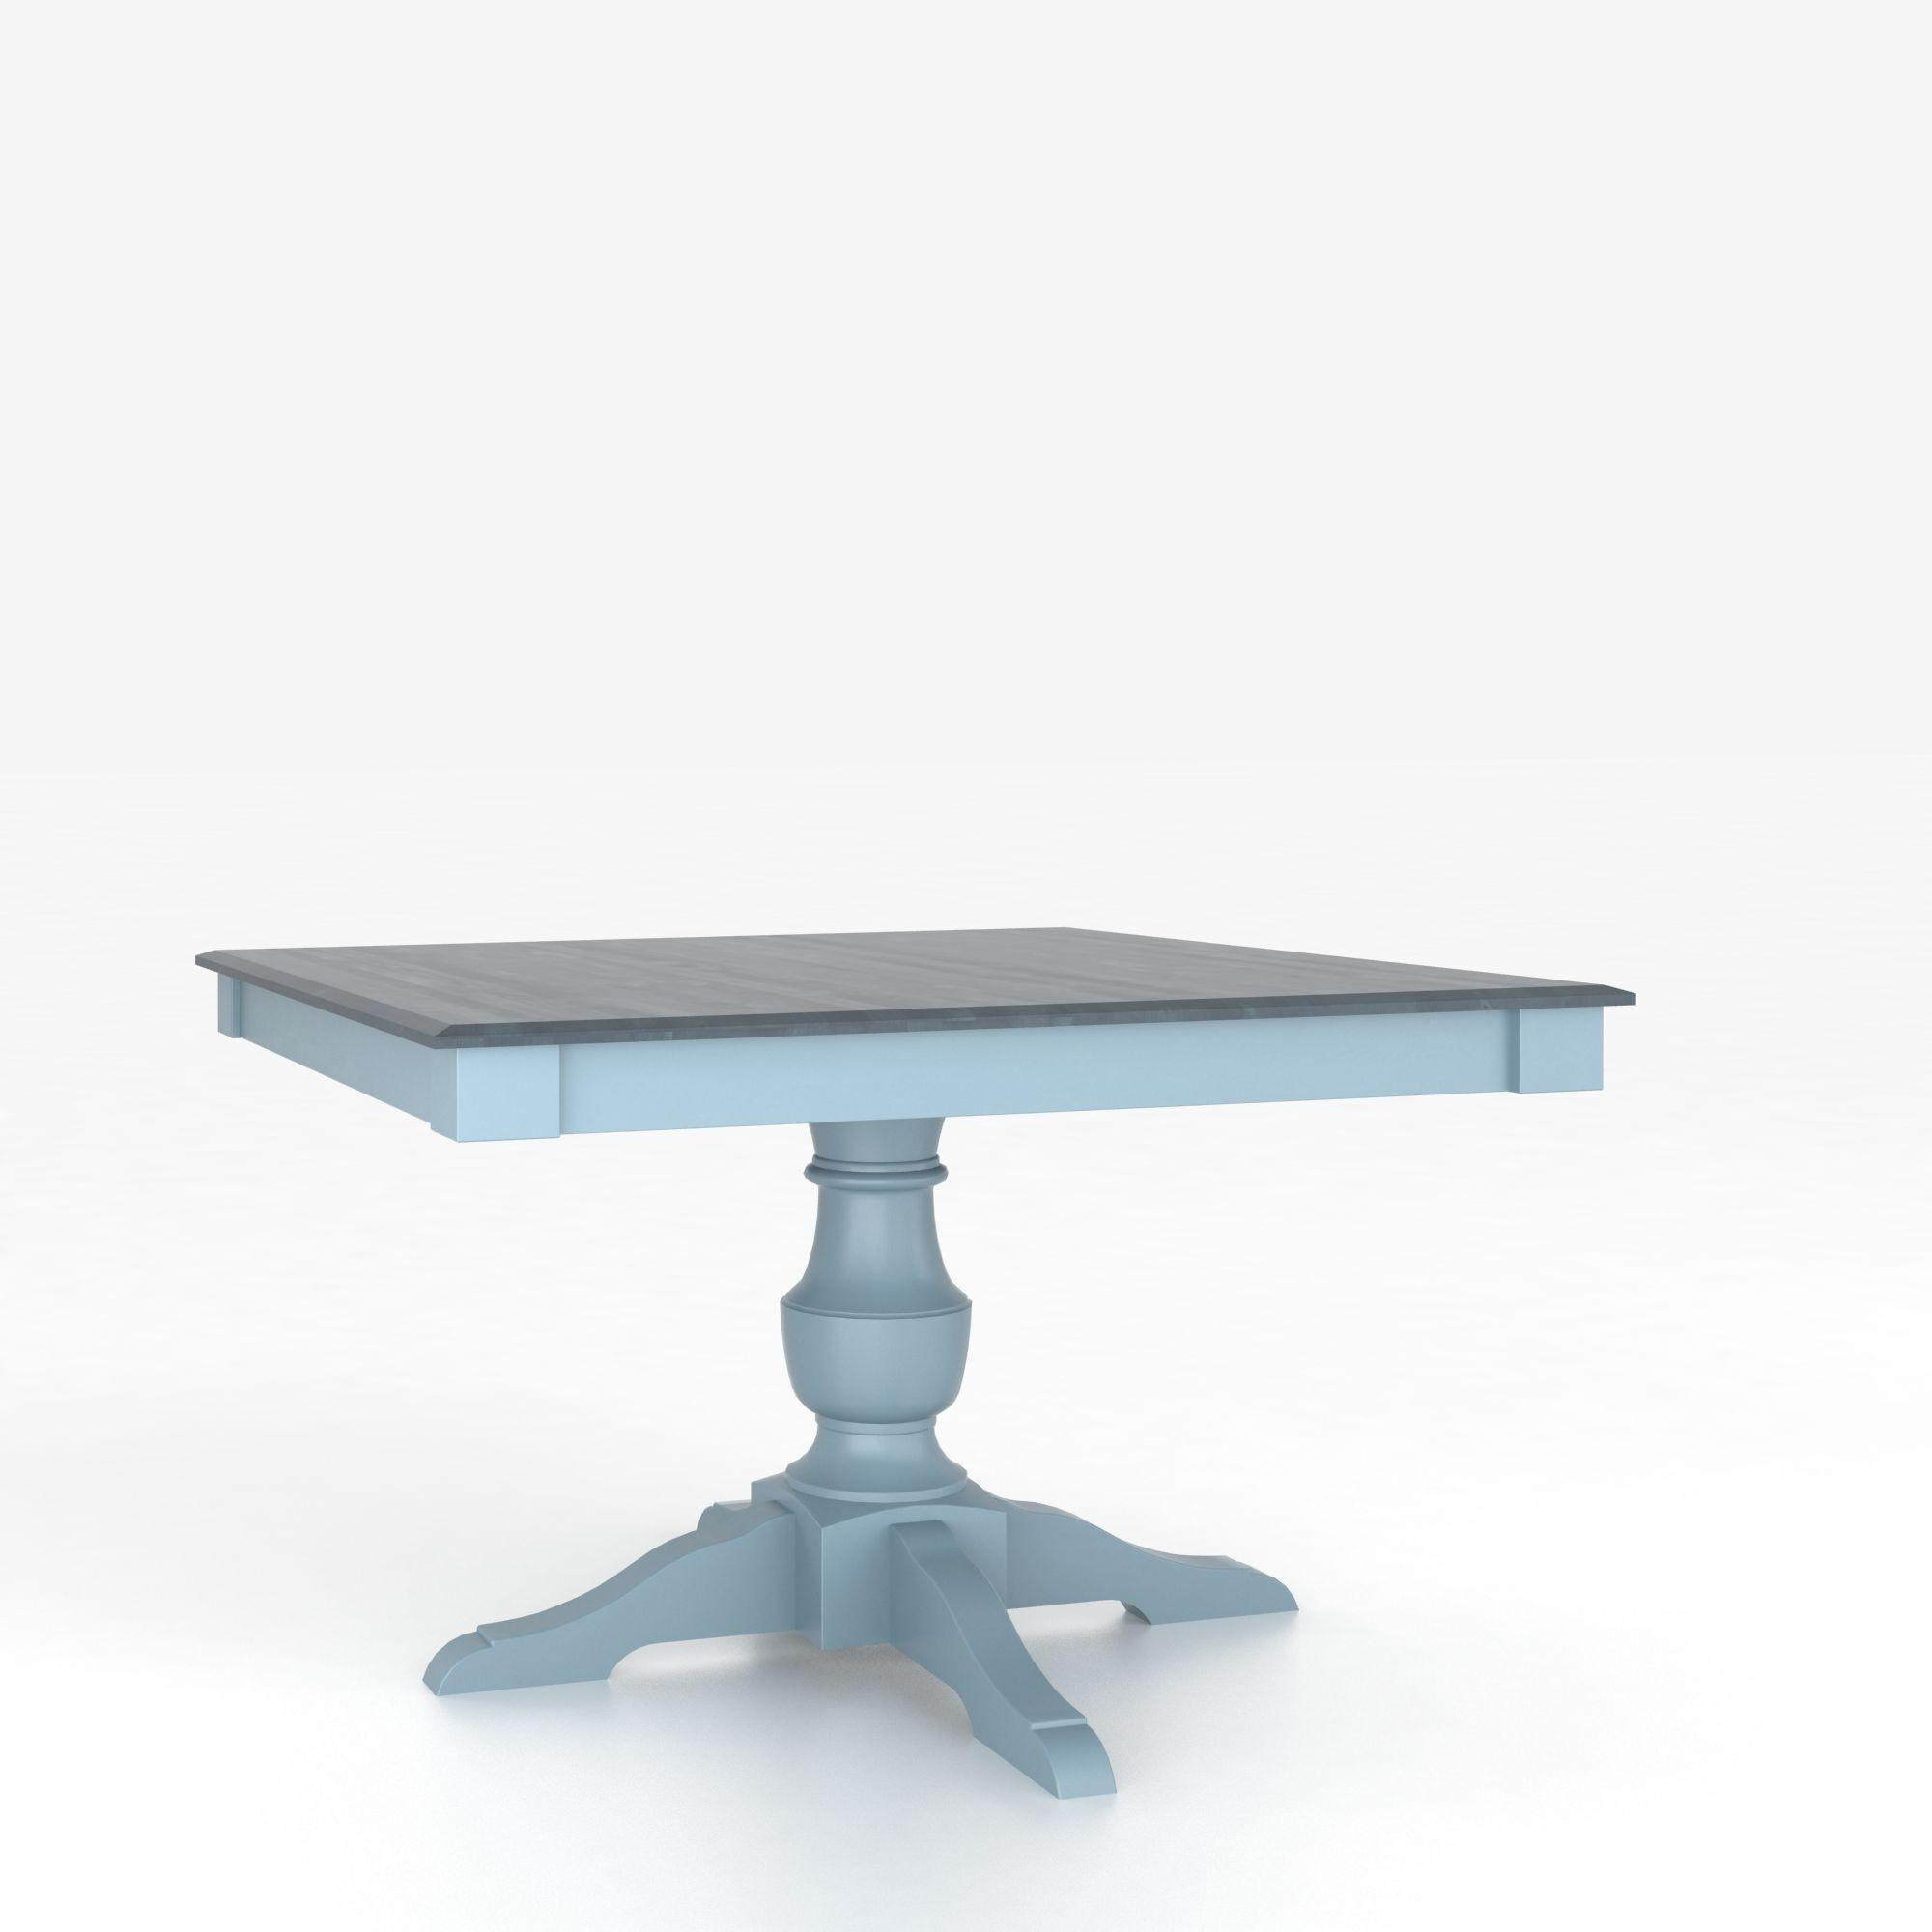 Custom Dining Tables <b>Customizable</b> Square Table w/ Pedestal by Canadel at Dinette Depot